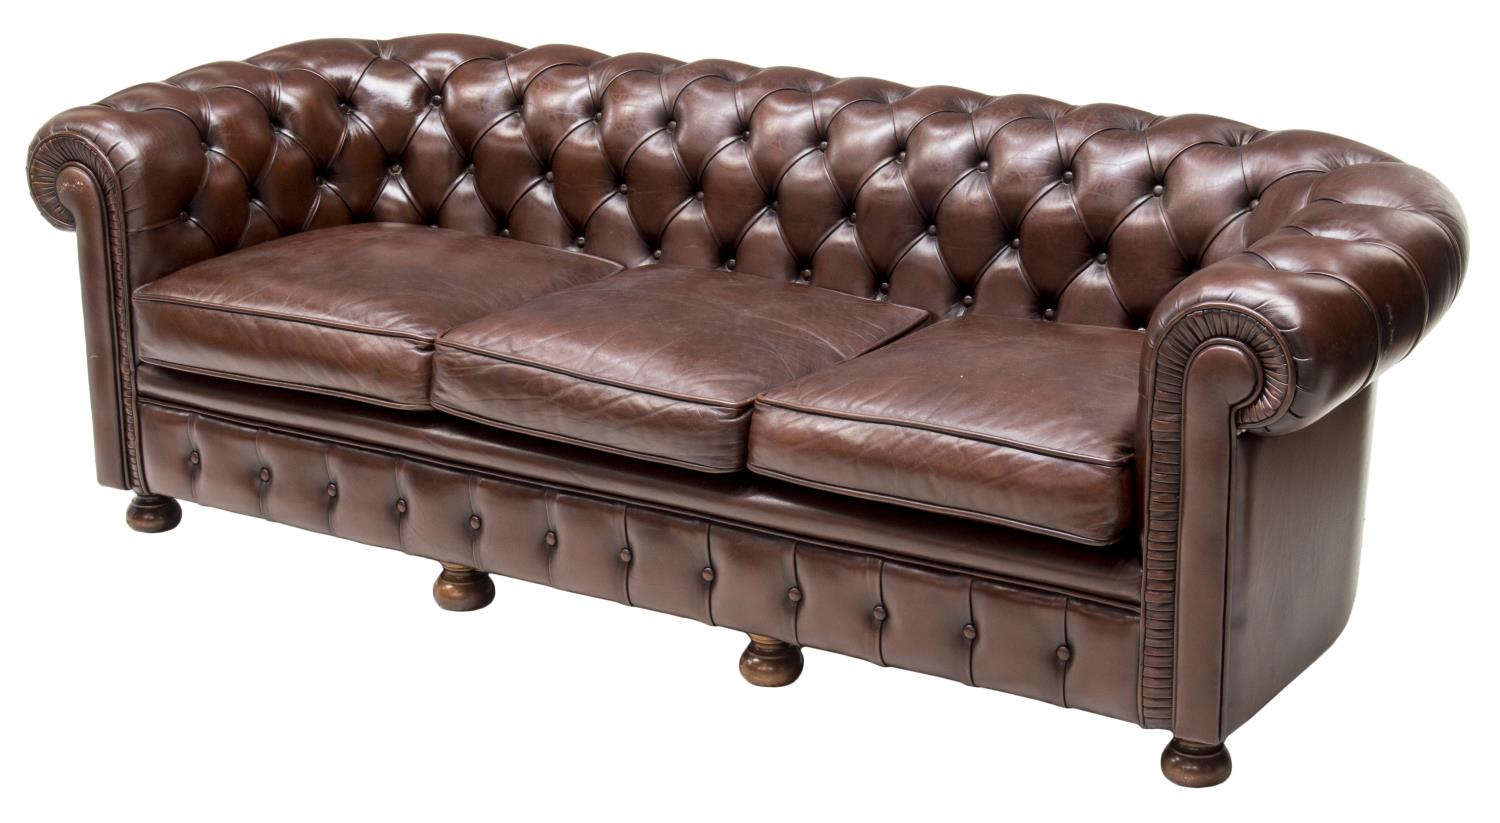 brown chesterfield sofa twin sleeper bed sheet set buttoned leather the crier